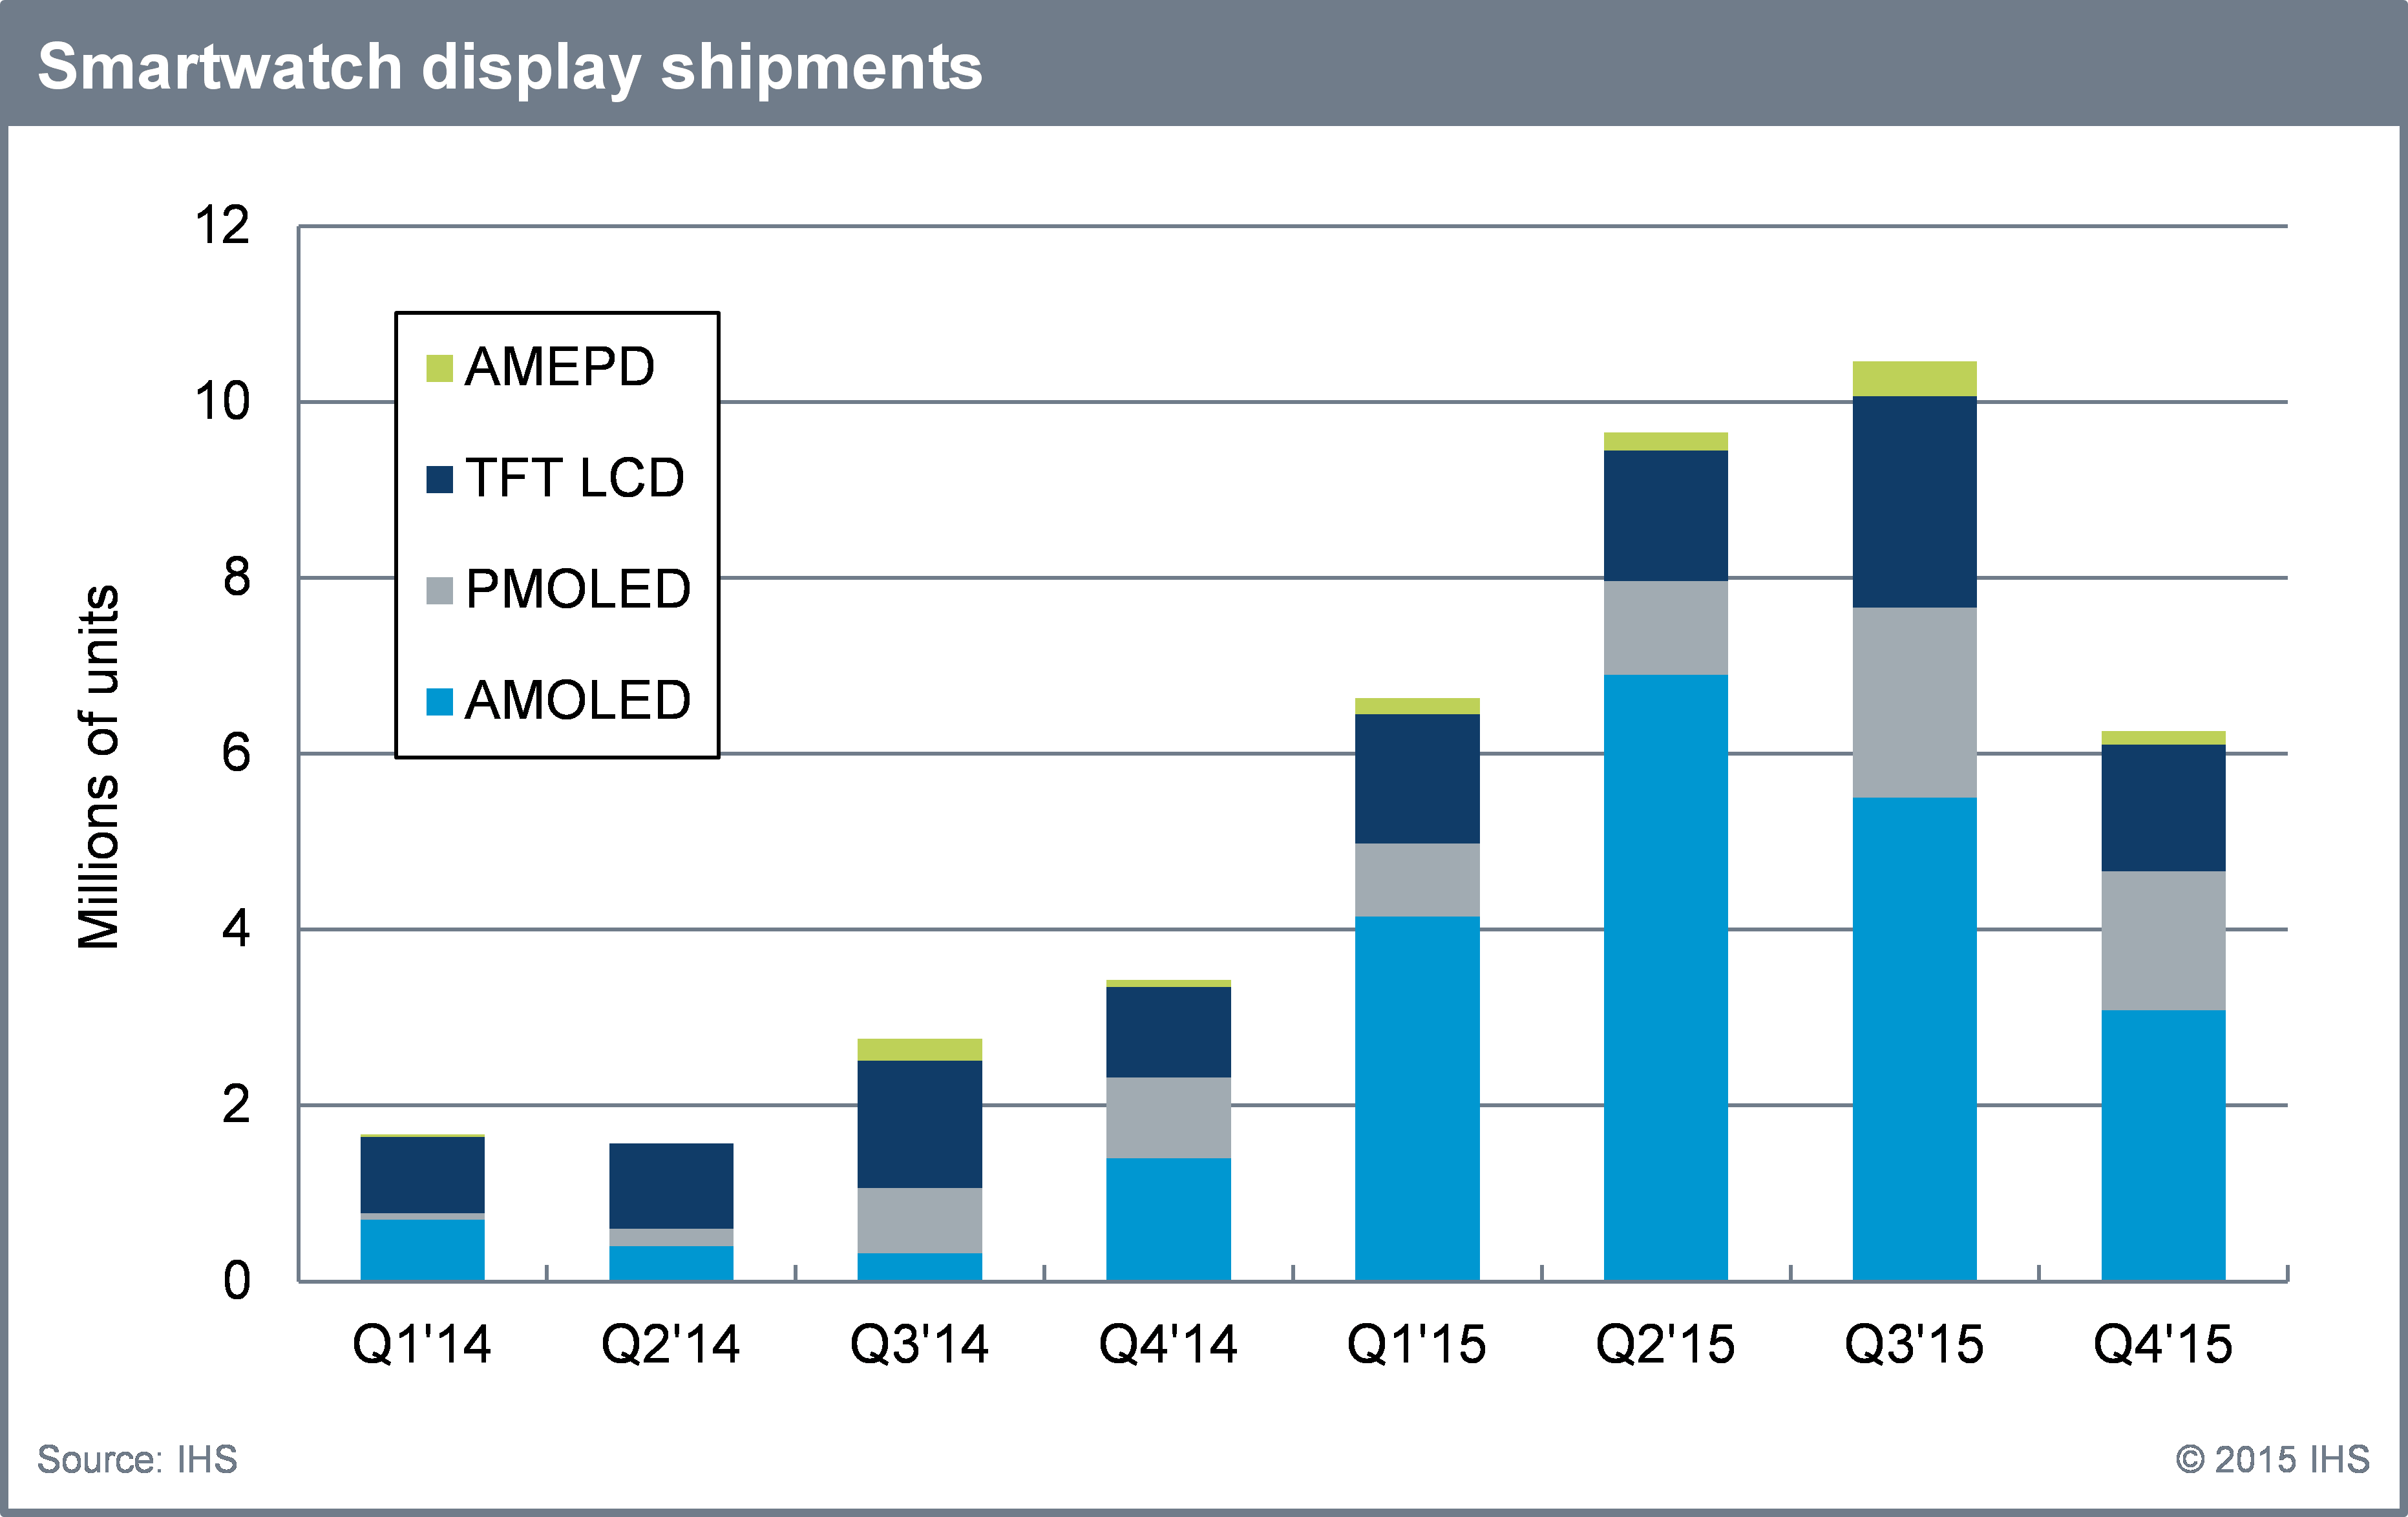 Smartwatch Displays to Reach Record Shipments in 2015 ...